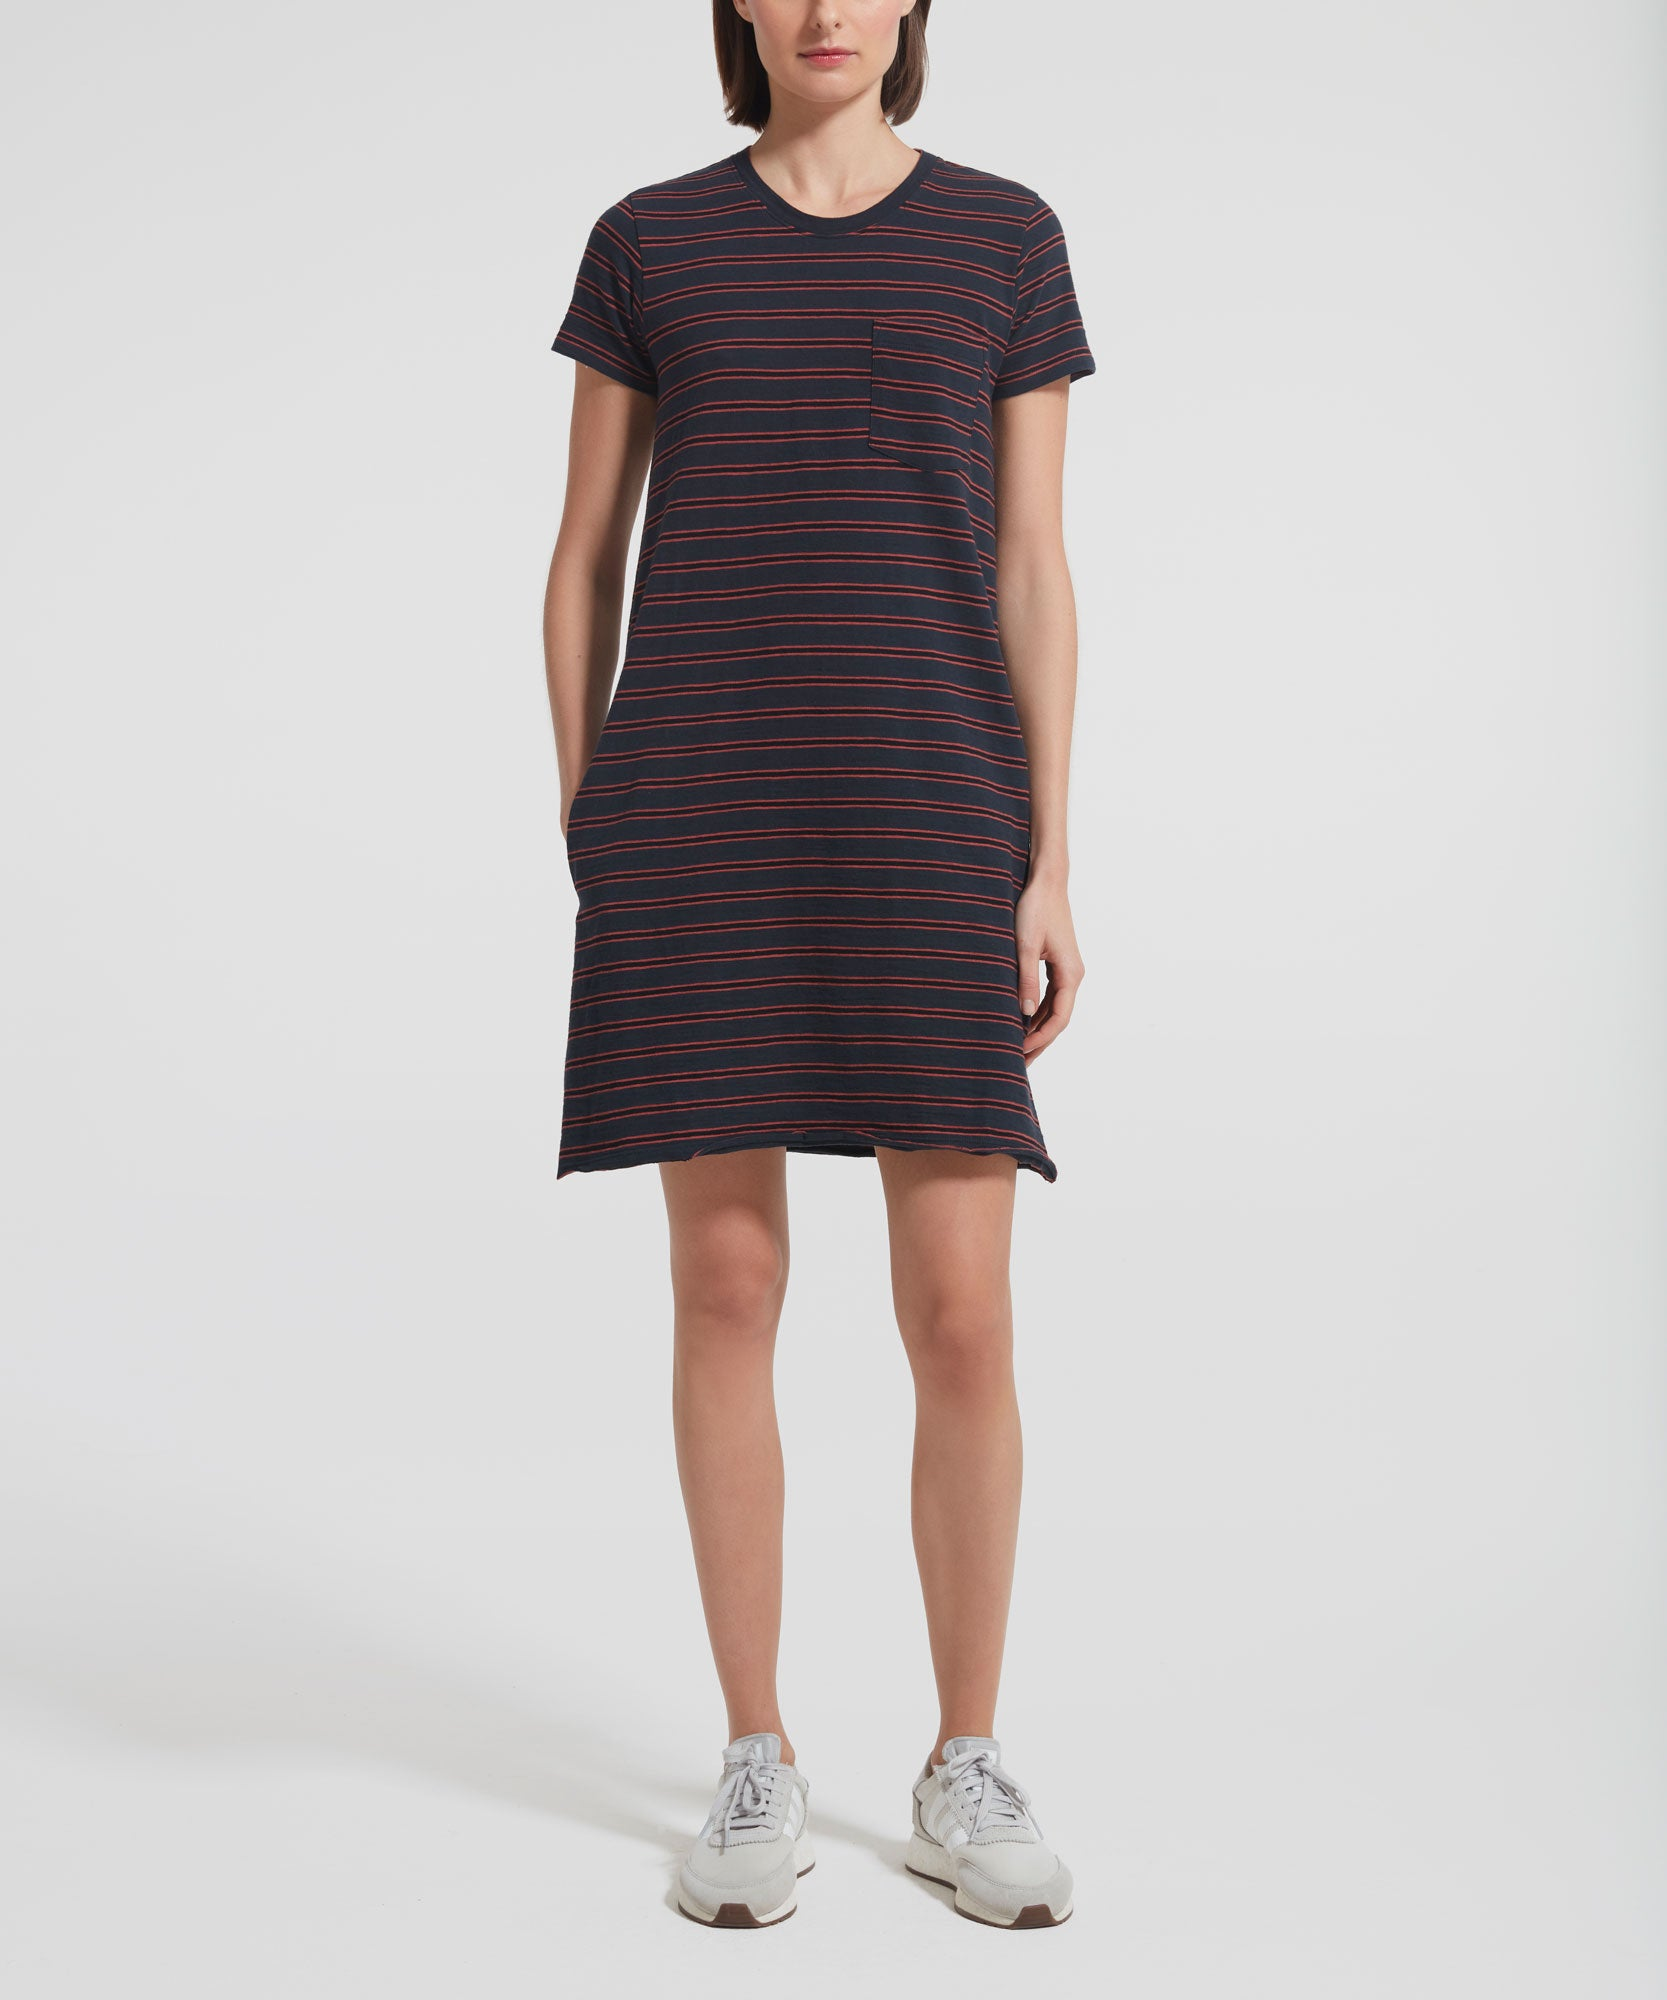 Striped Short Sleeve Crew Neck Dress - Women's Casual Dress by ATM Anthony Thomas Melillo